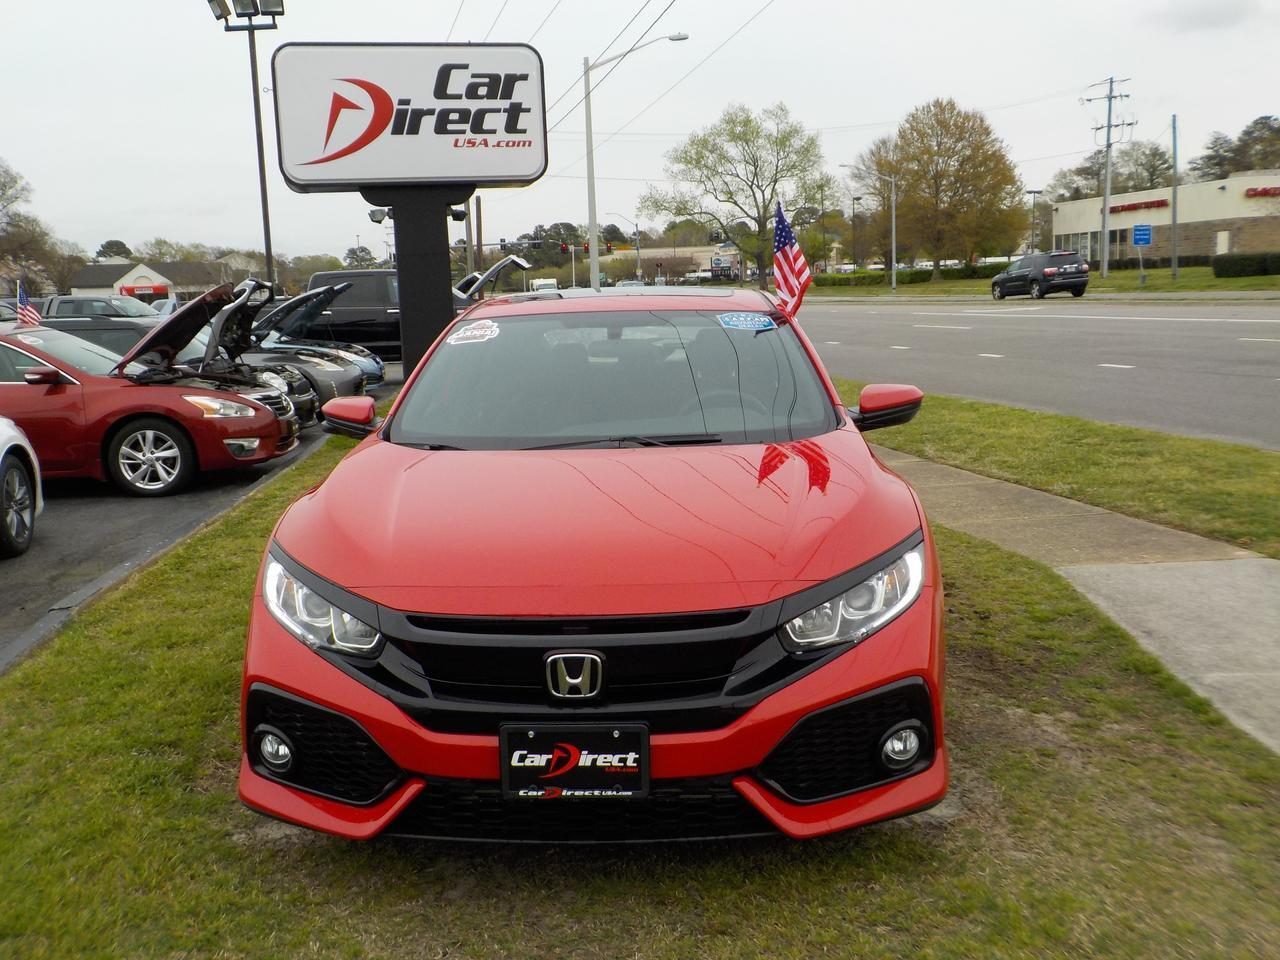 2017 HONDA CIVIC EX, WARRANTY, CARFAX ONE OWNER & LOW MILEAGE, REMOTE START, BACKUP CAMERA, BLUETOOTH, BACKUP CAMERA! Virginia Beach VA